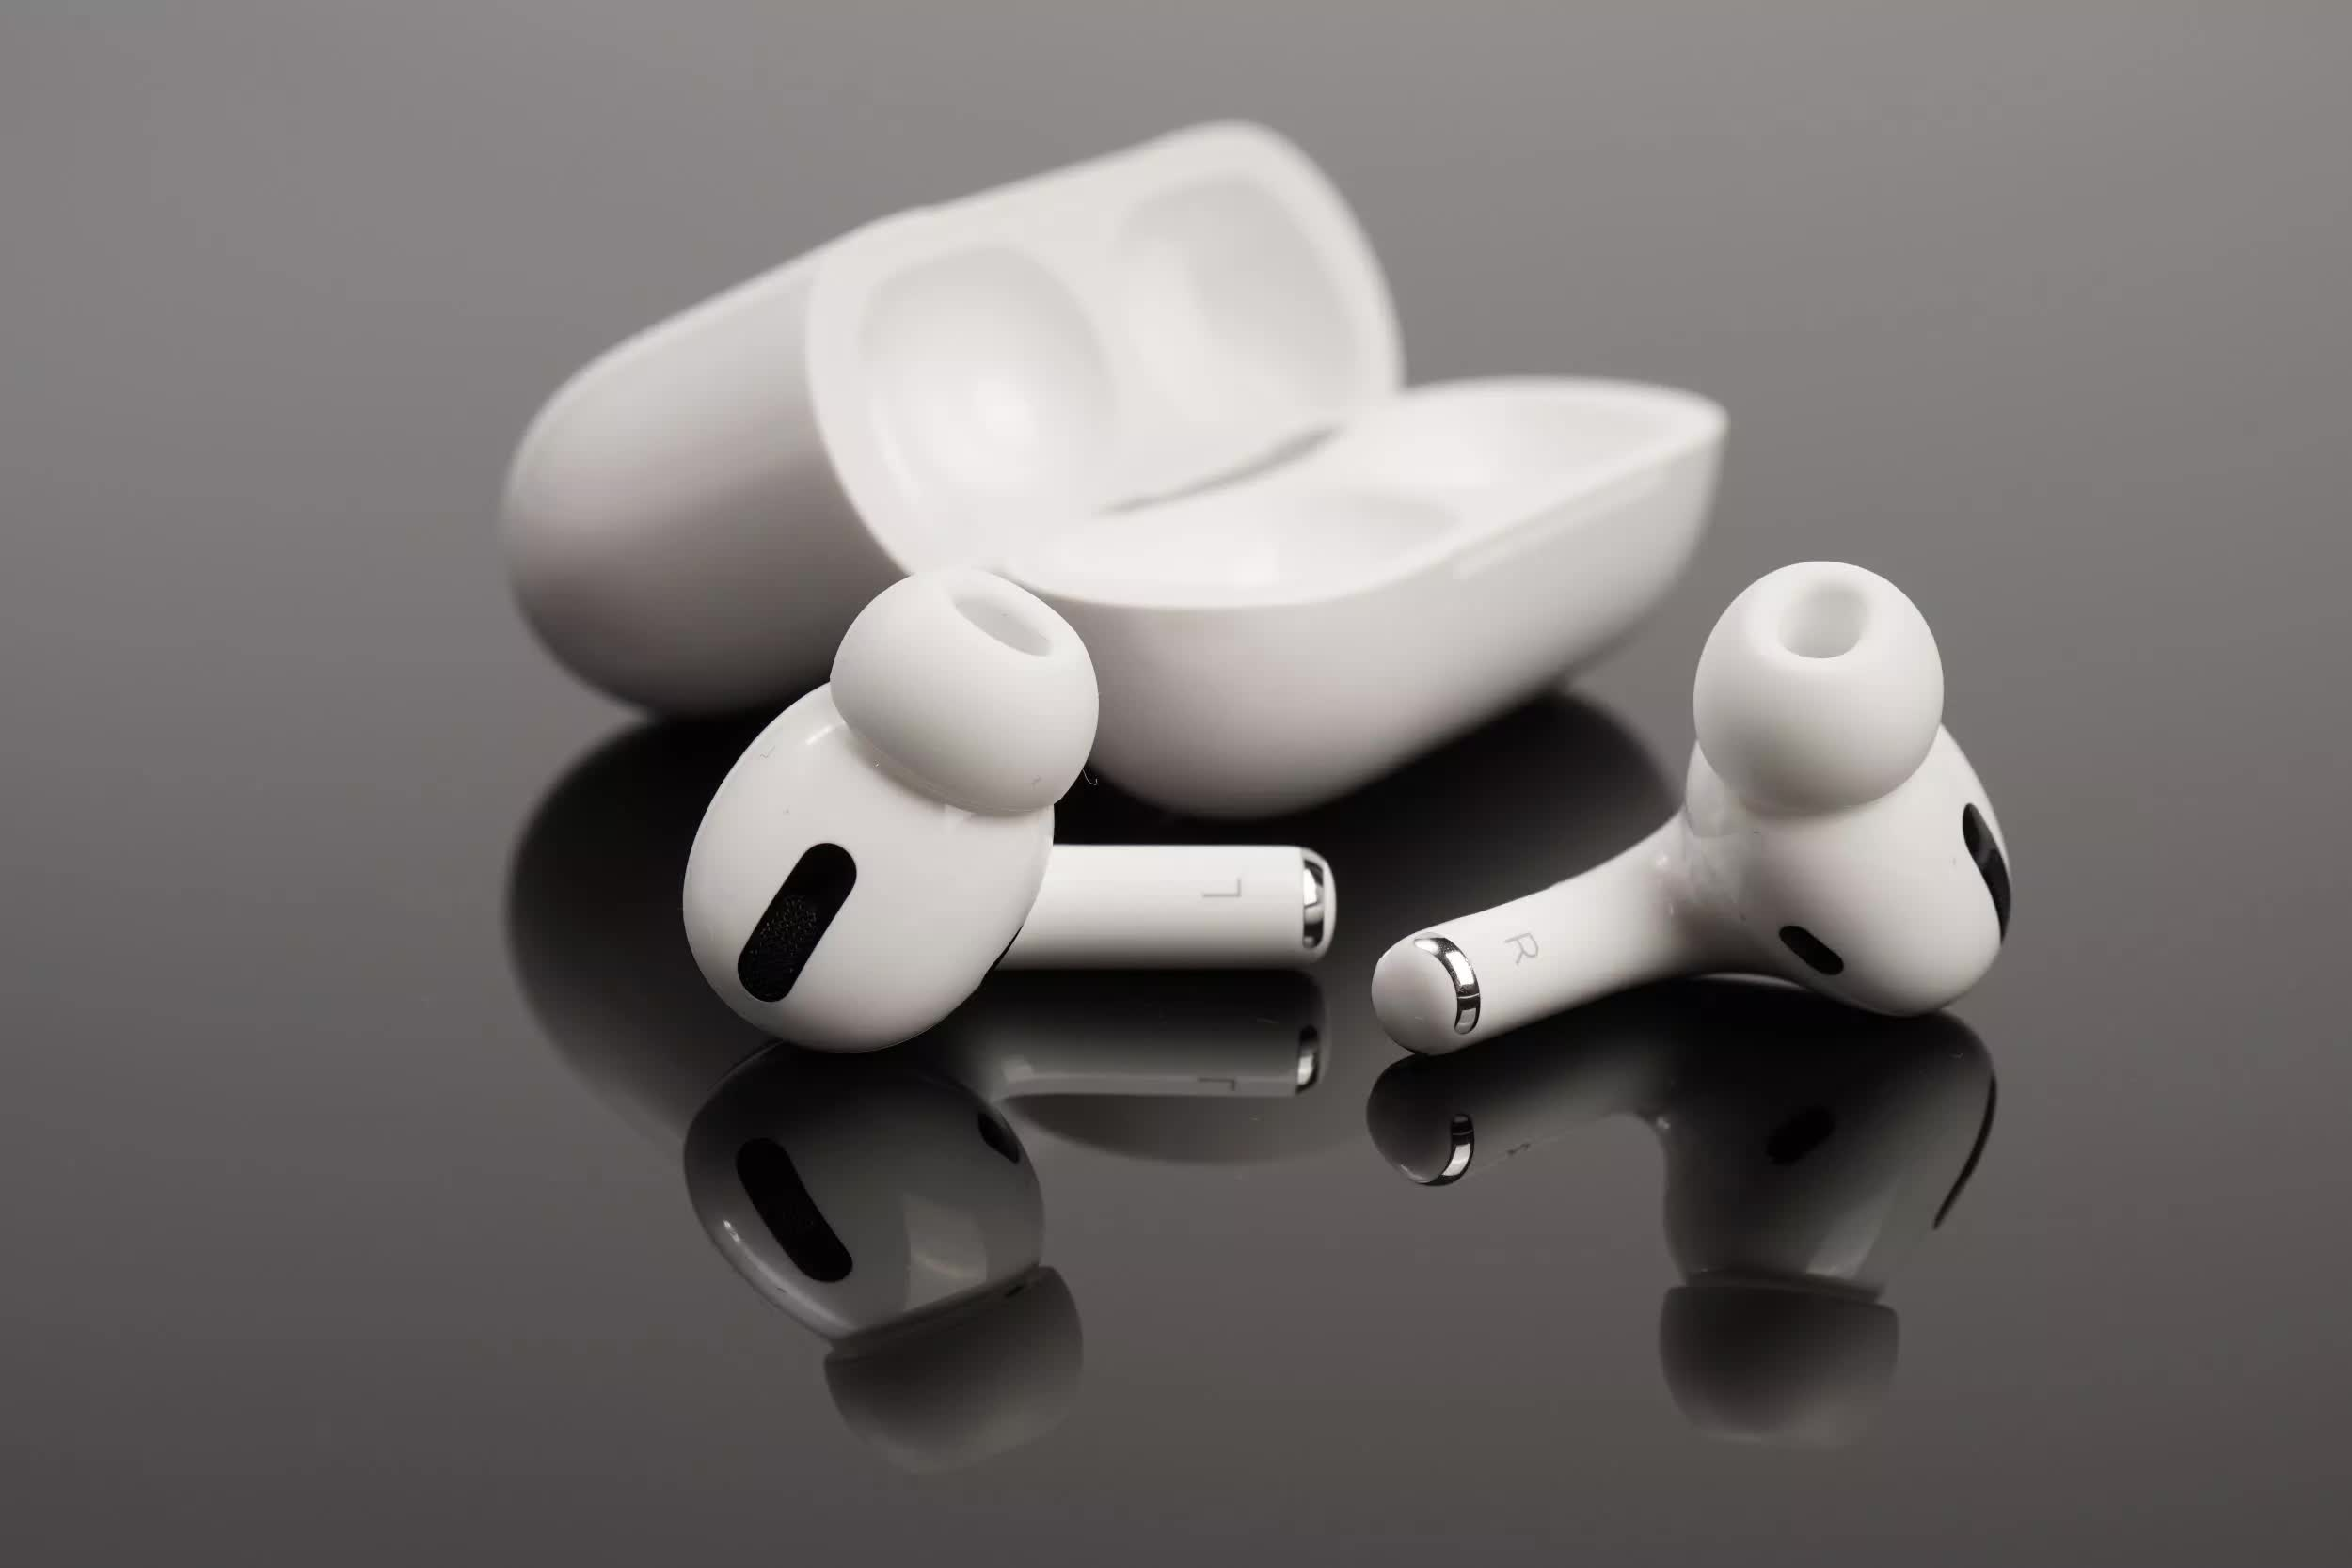 U.S. customs has seized over 360,000 fake AirPods in 2021 alone